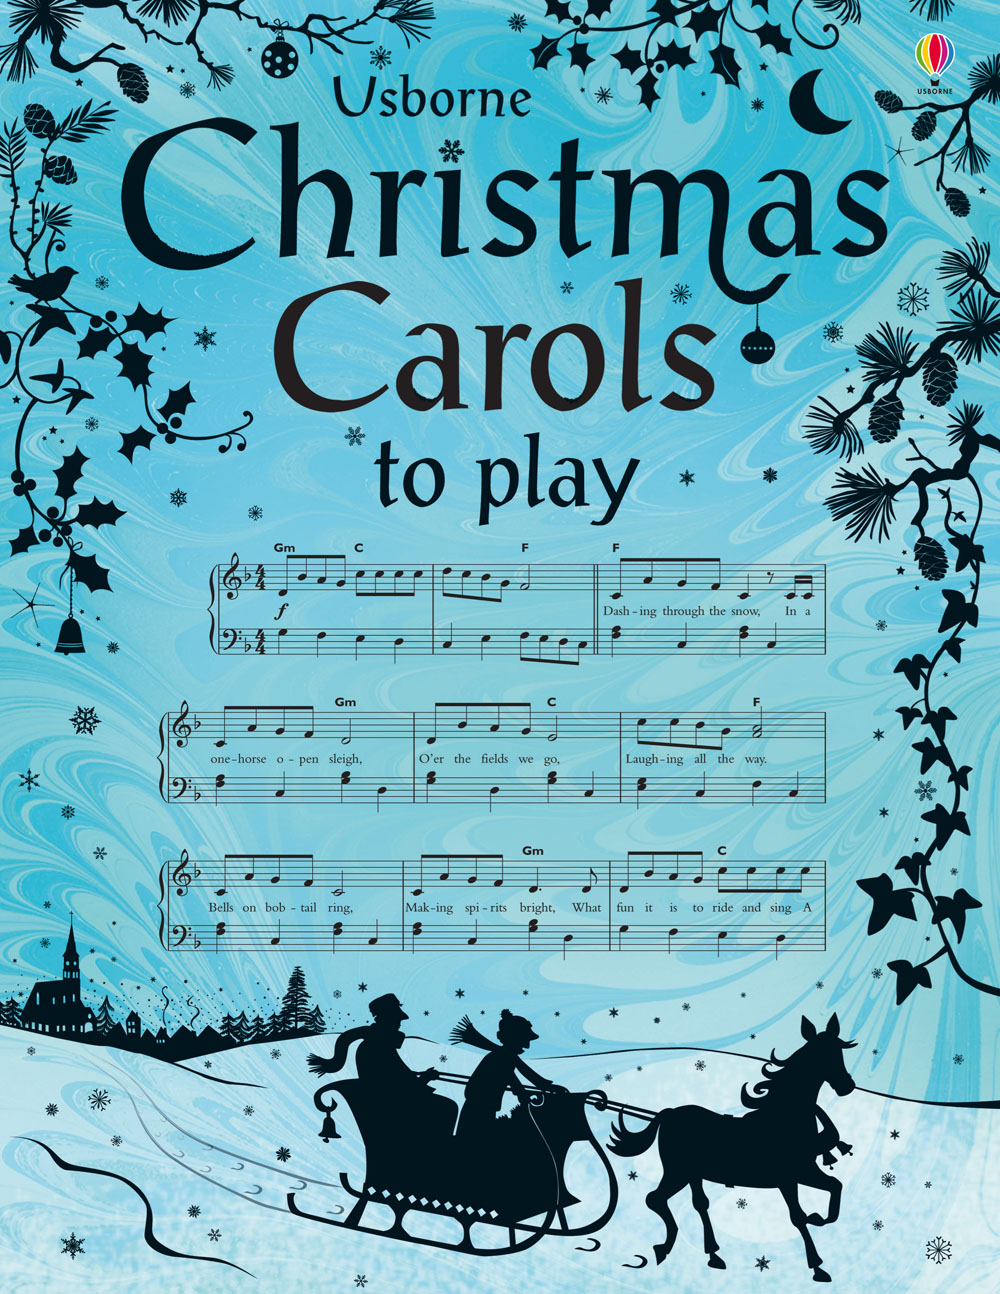 """Christmas carols to play"""" at Usborne Books at Home"""